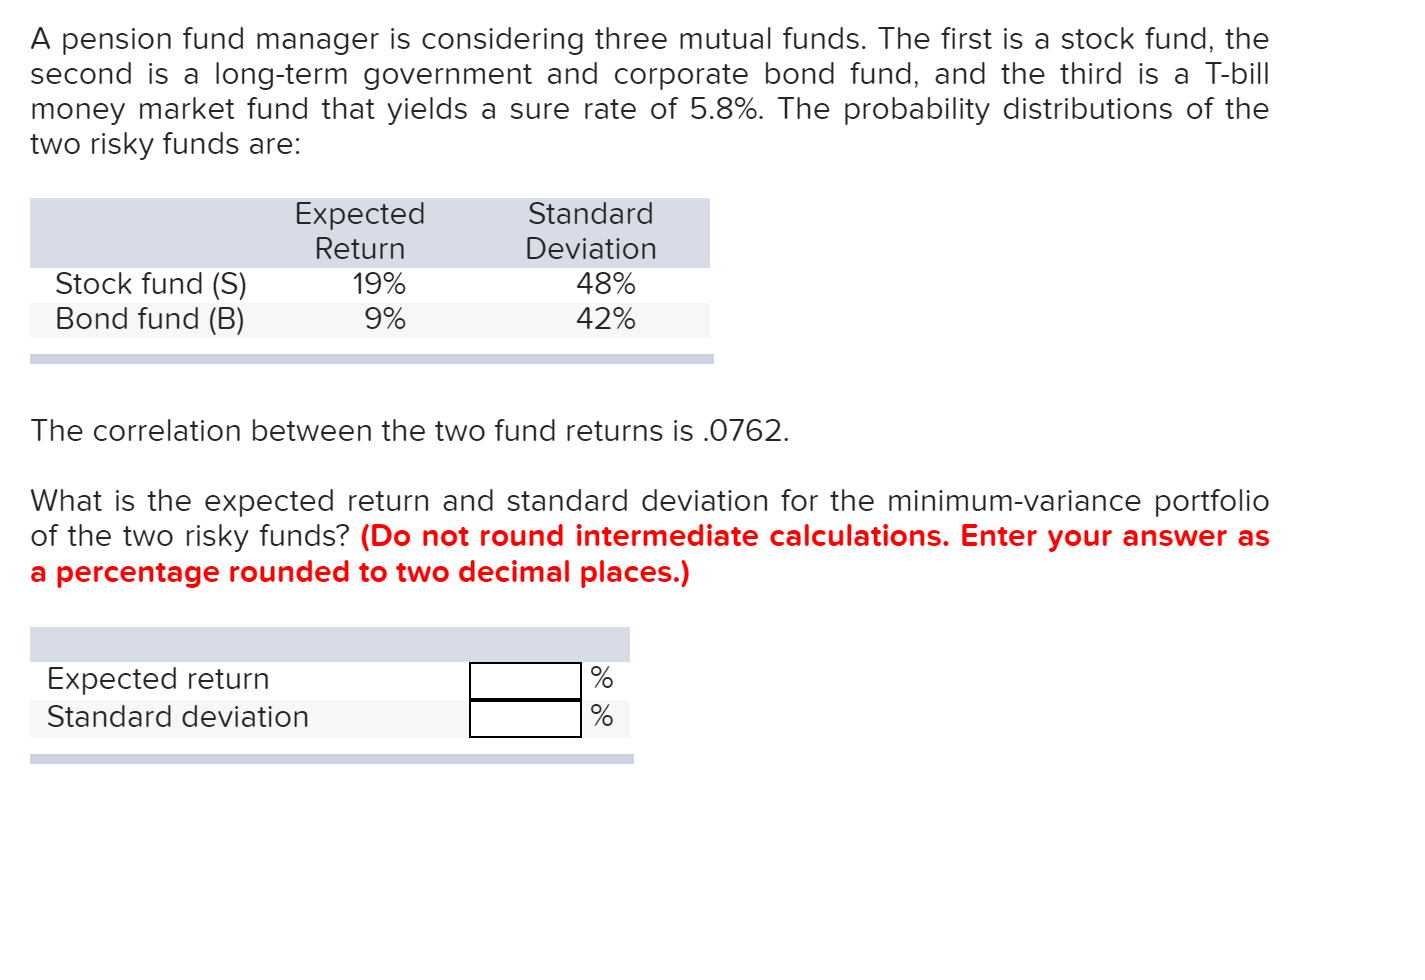 A pension fund manager is considering three mutual funds. The first is a stock fund, the second is a long-term government and corporate bond fund, and the third is a T-bill money market fund that yields two risky funds are: a sure rate of 5.8%. The probability distributions of the Expected Return 19% Standard Deviation Stock fund (S) Bond fund (B) 48% 42% 9% The correlation between the two fund returns is .0762 What is the expected return and standard deviation for the minimum-variance portfolio of the two risky funds? (Do not round intermediate calculations. Enter your answer as a percentage rounded to two decimal places.) Expected return Standard deviation